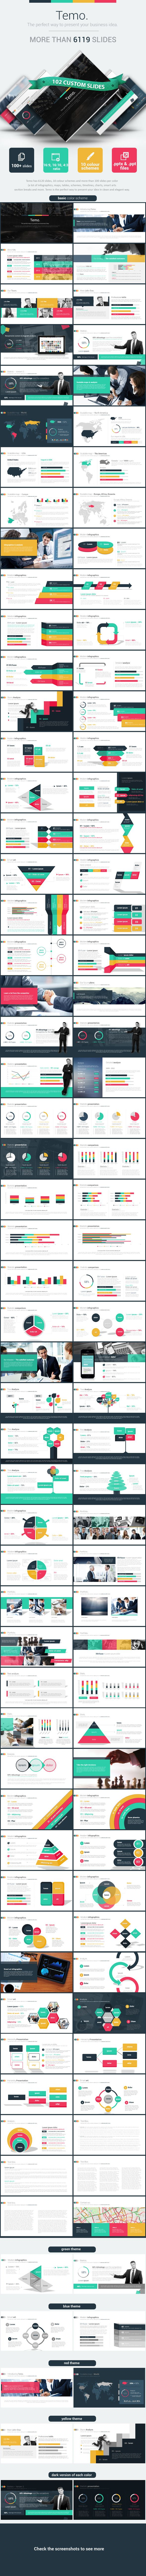 Temo Powerpoint Presentation Template (Powerpoint Templates)